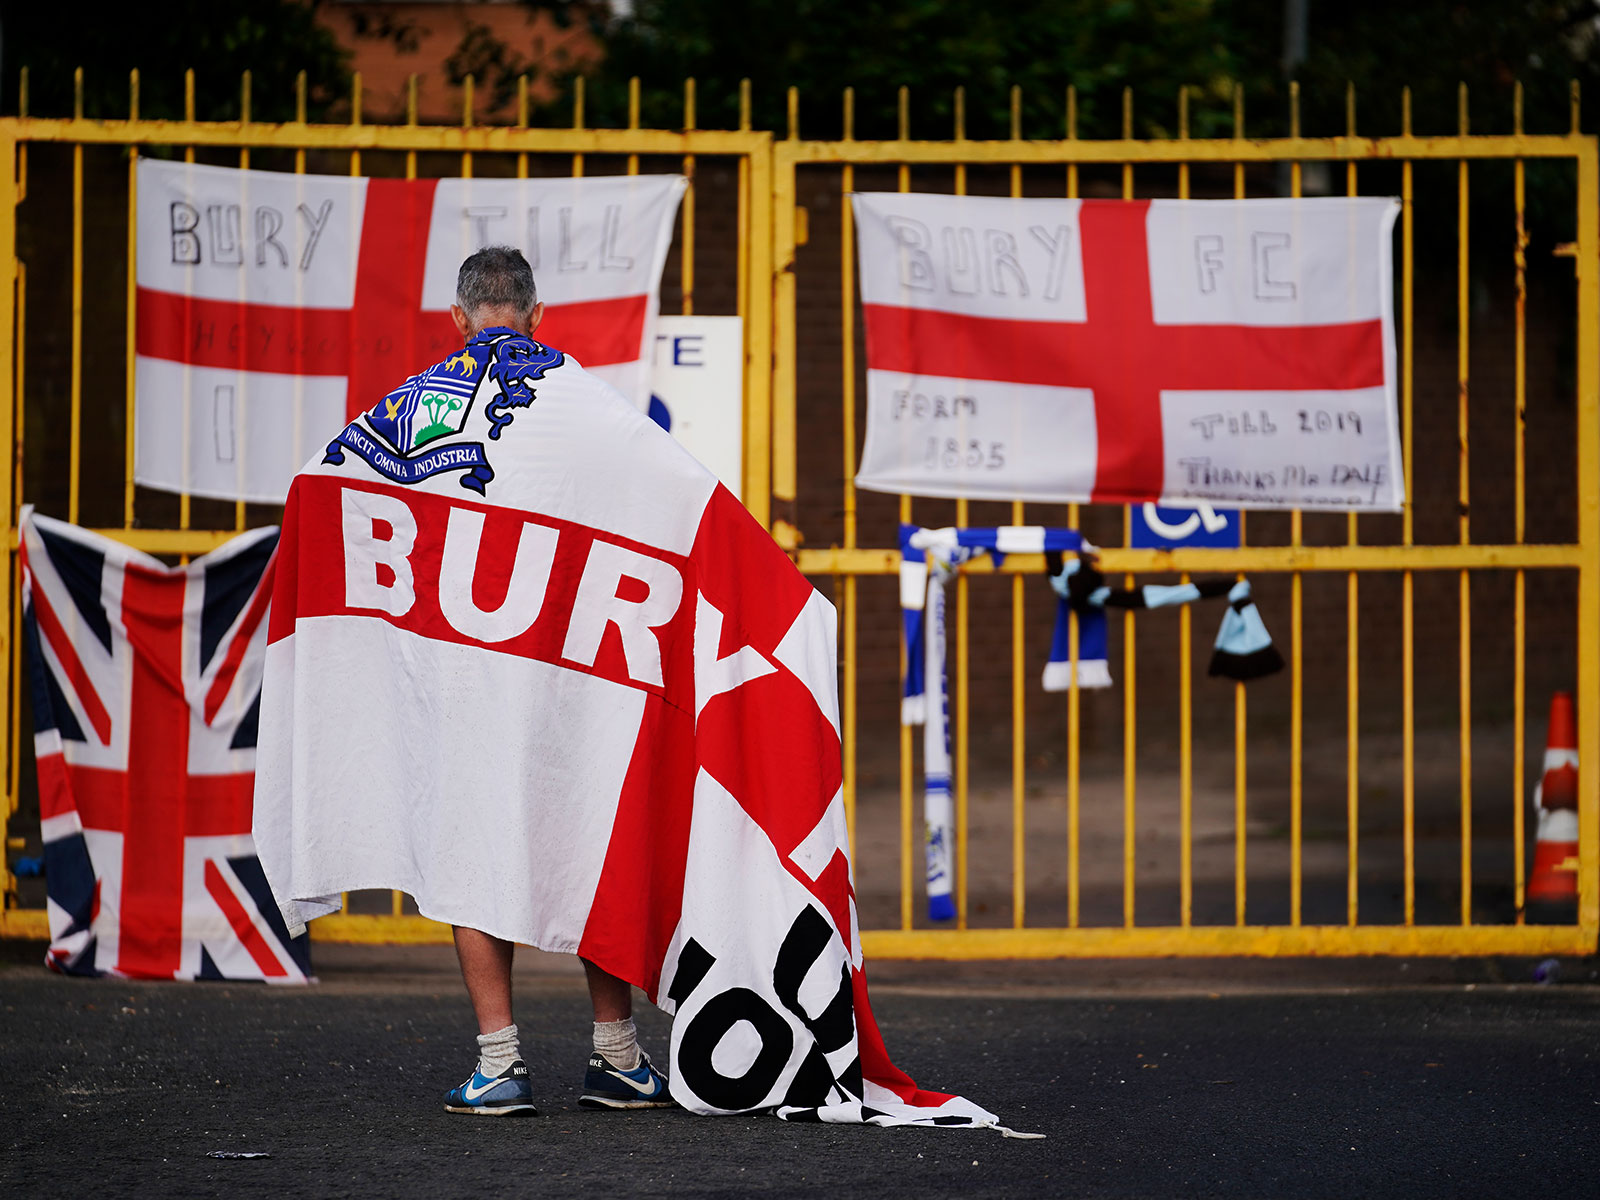 A Bury fan stands outside his club's stadium